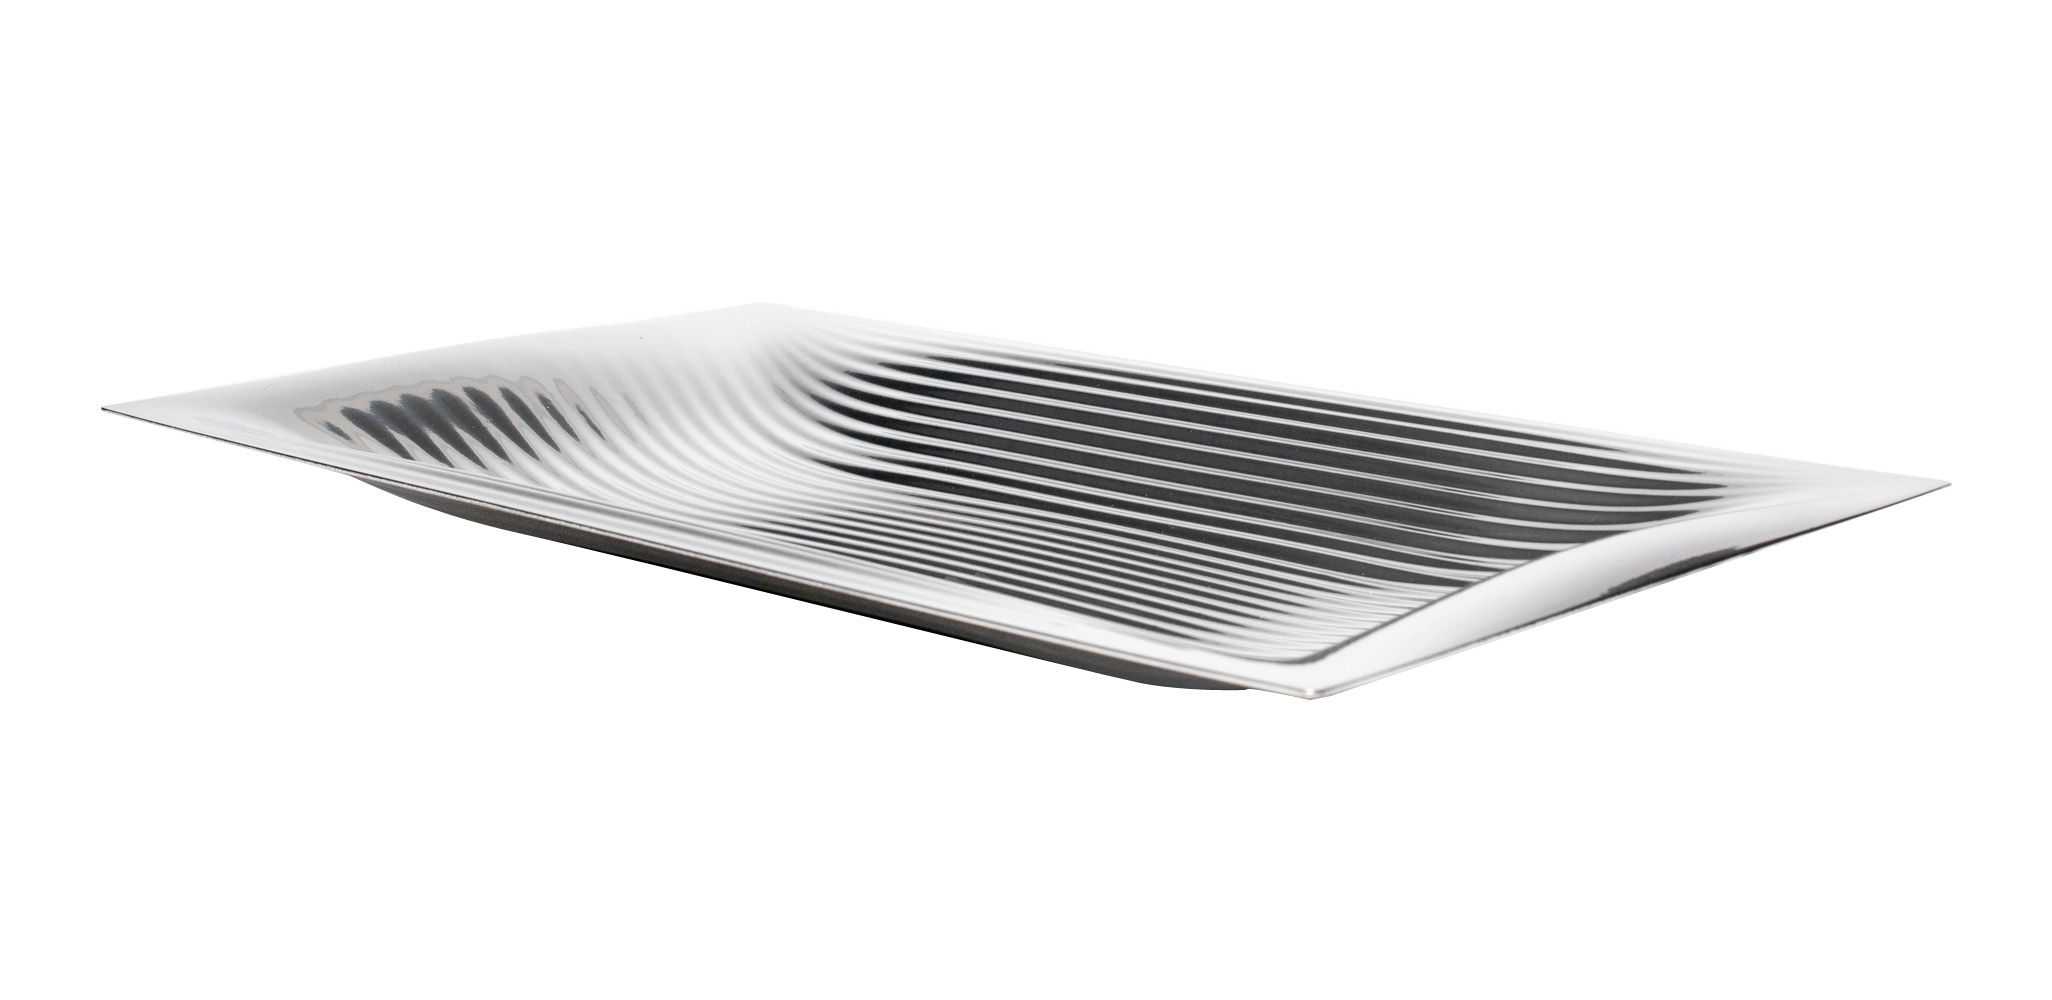 Tableware - Trays - Megaptera Tray - 45 x 26 cm by Alessi - Stainless steel - Stainless steel